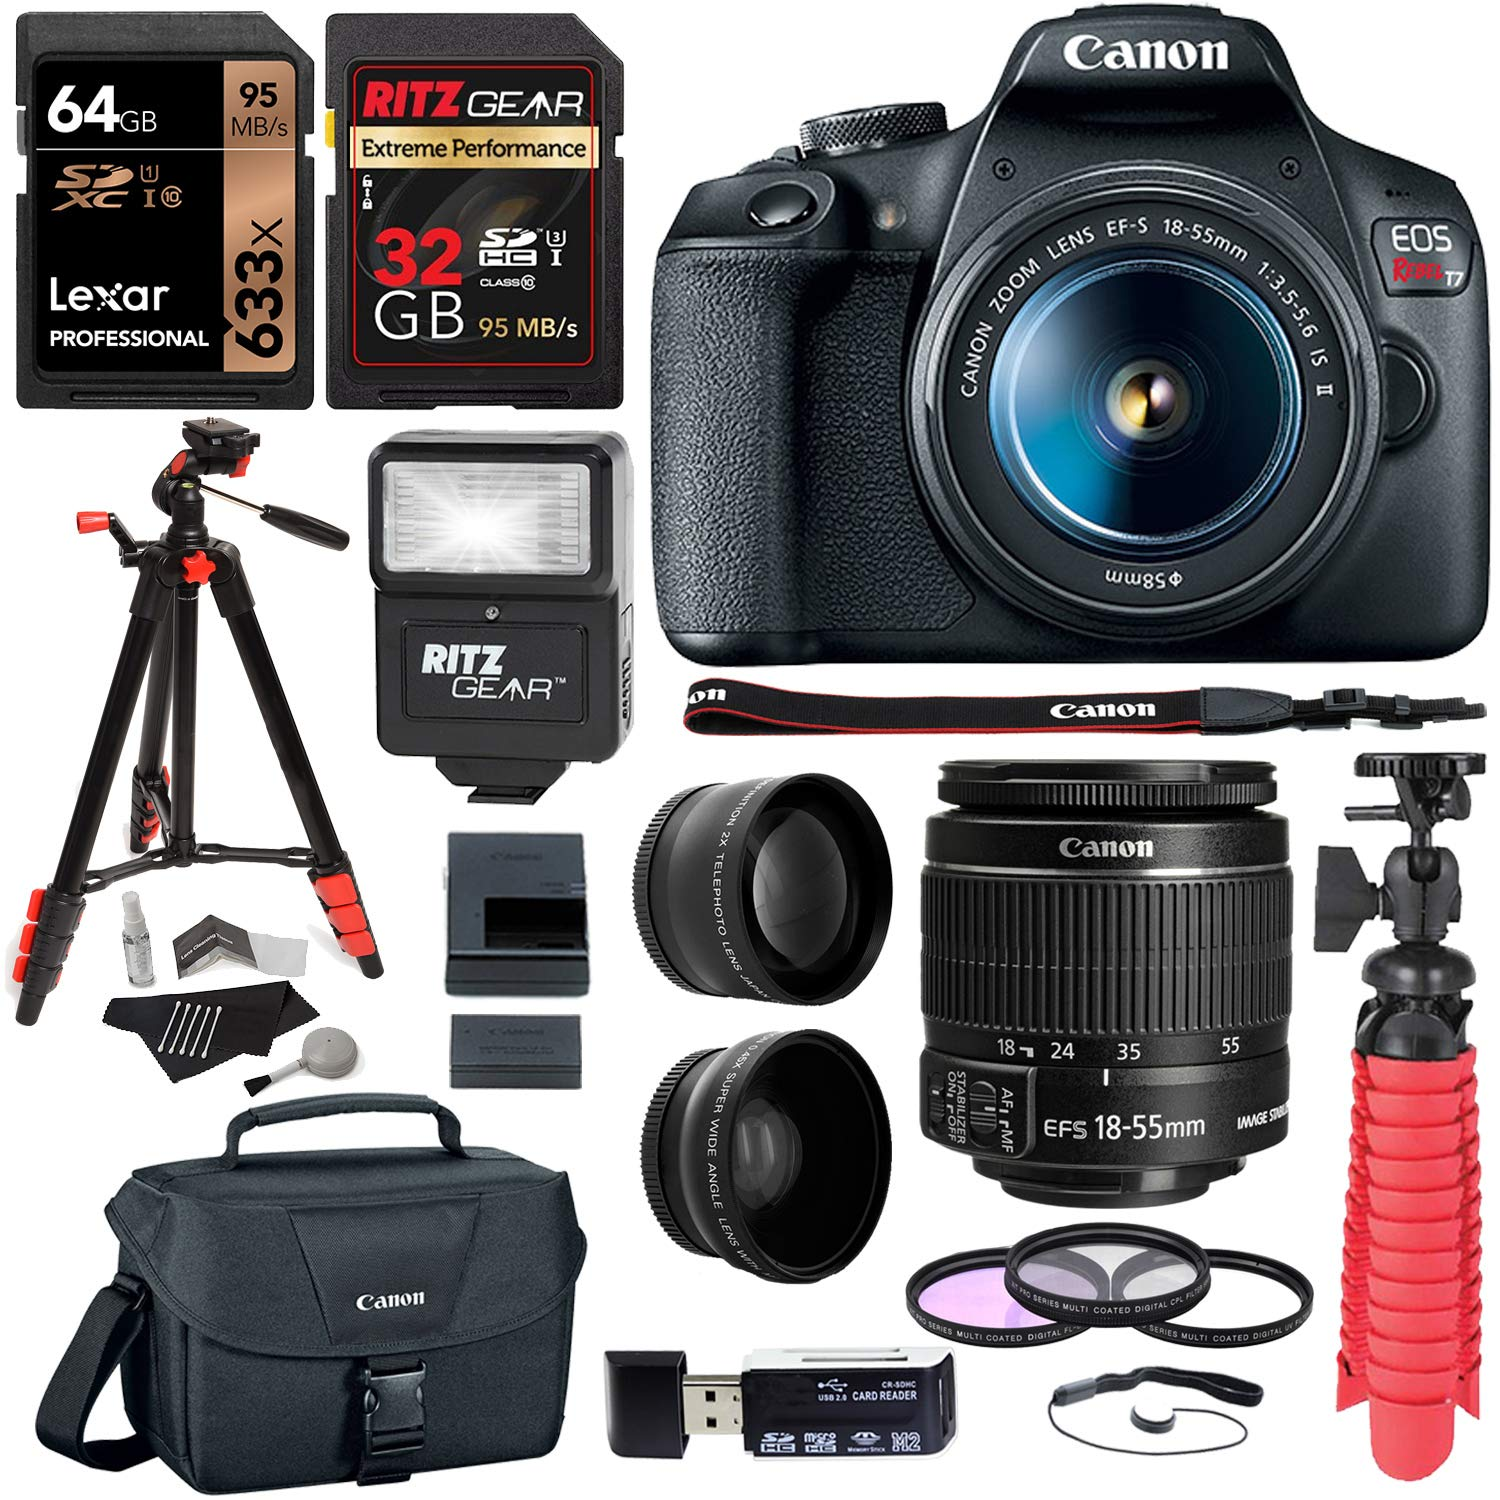 Canon EOS Rebel T7 24MP Camera with EF-S 18-55mm is II Lens, 2 Memory Cards, Slave Flash, 57'' Tripod, Camera Bag, Cleaning Kit, Memory Card Reader/Writer Bundle